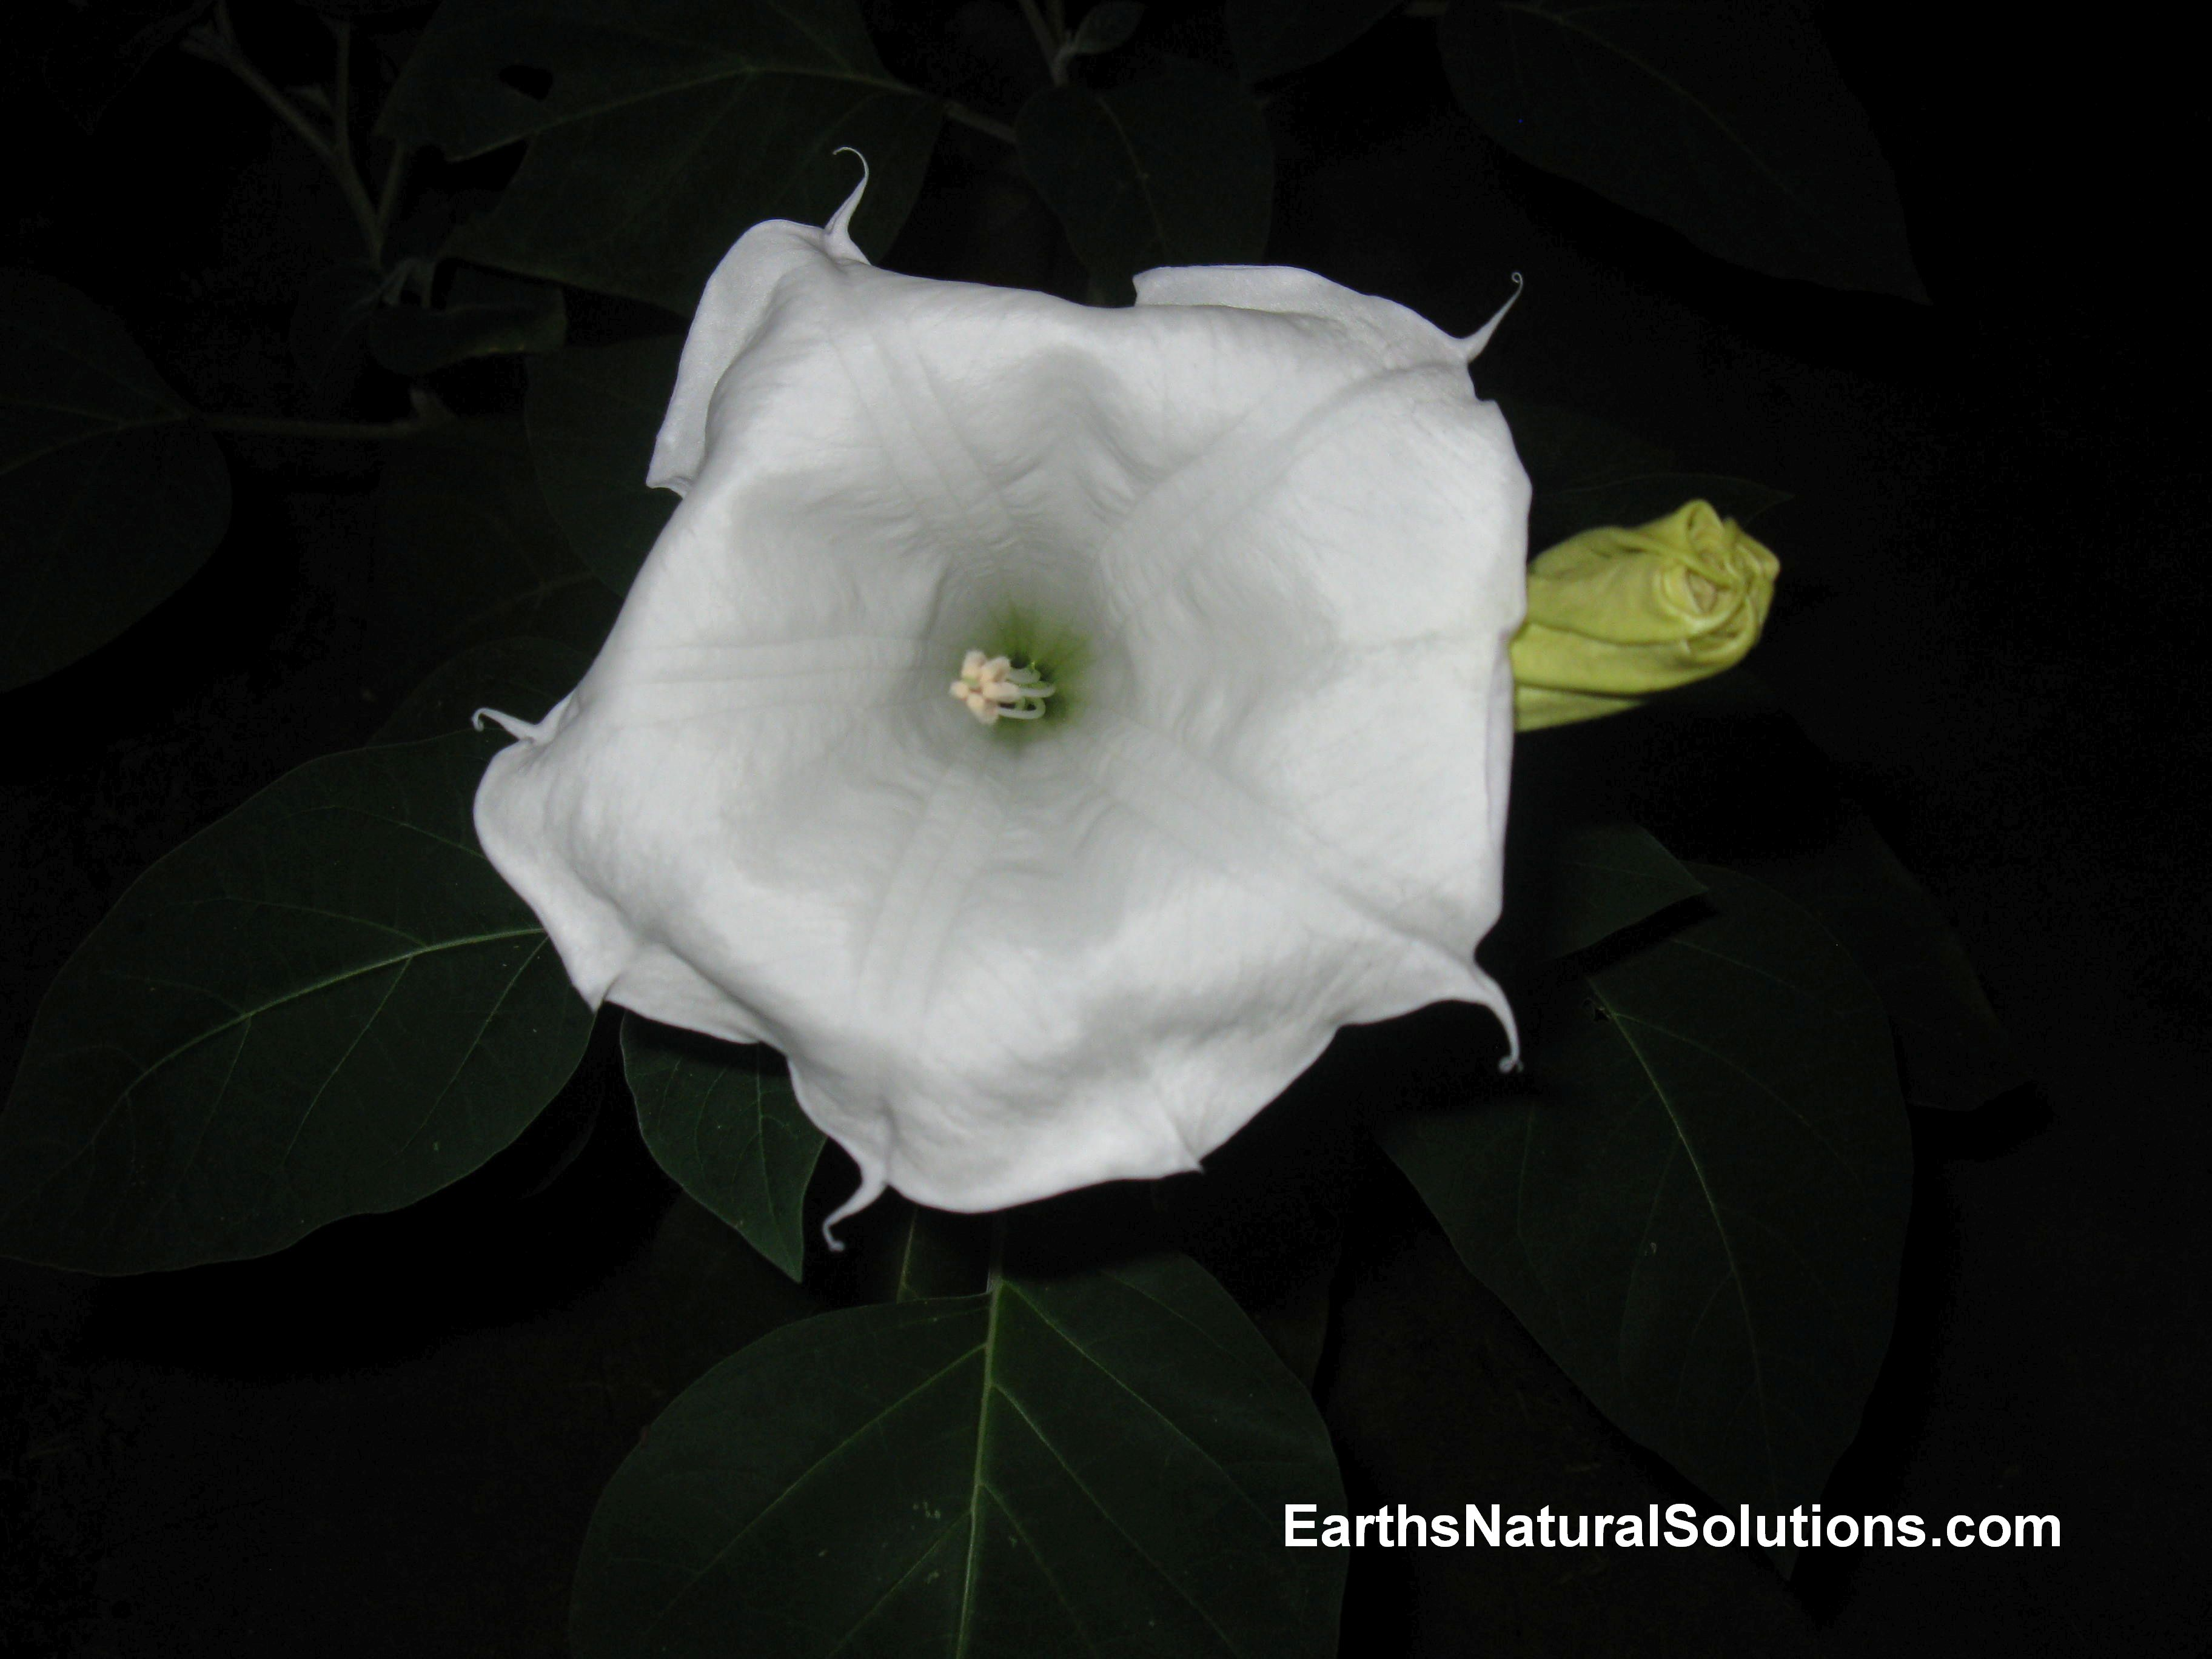 Earths natural Solutions